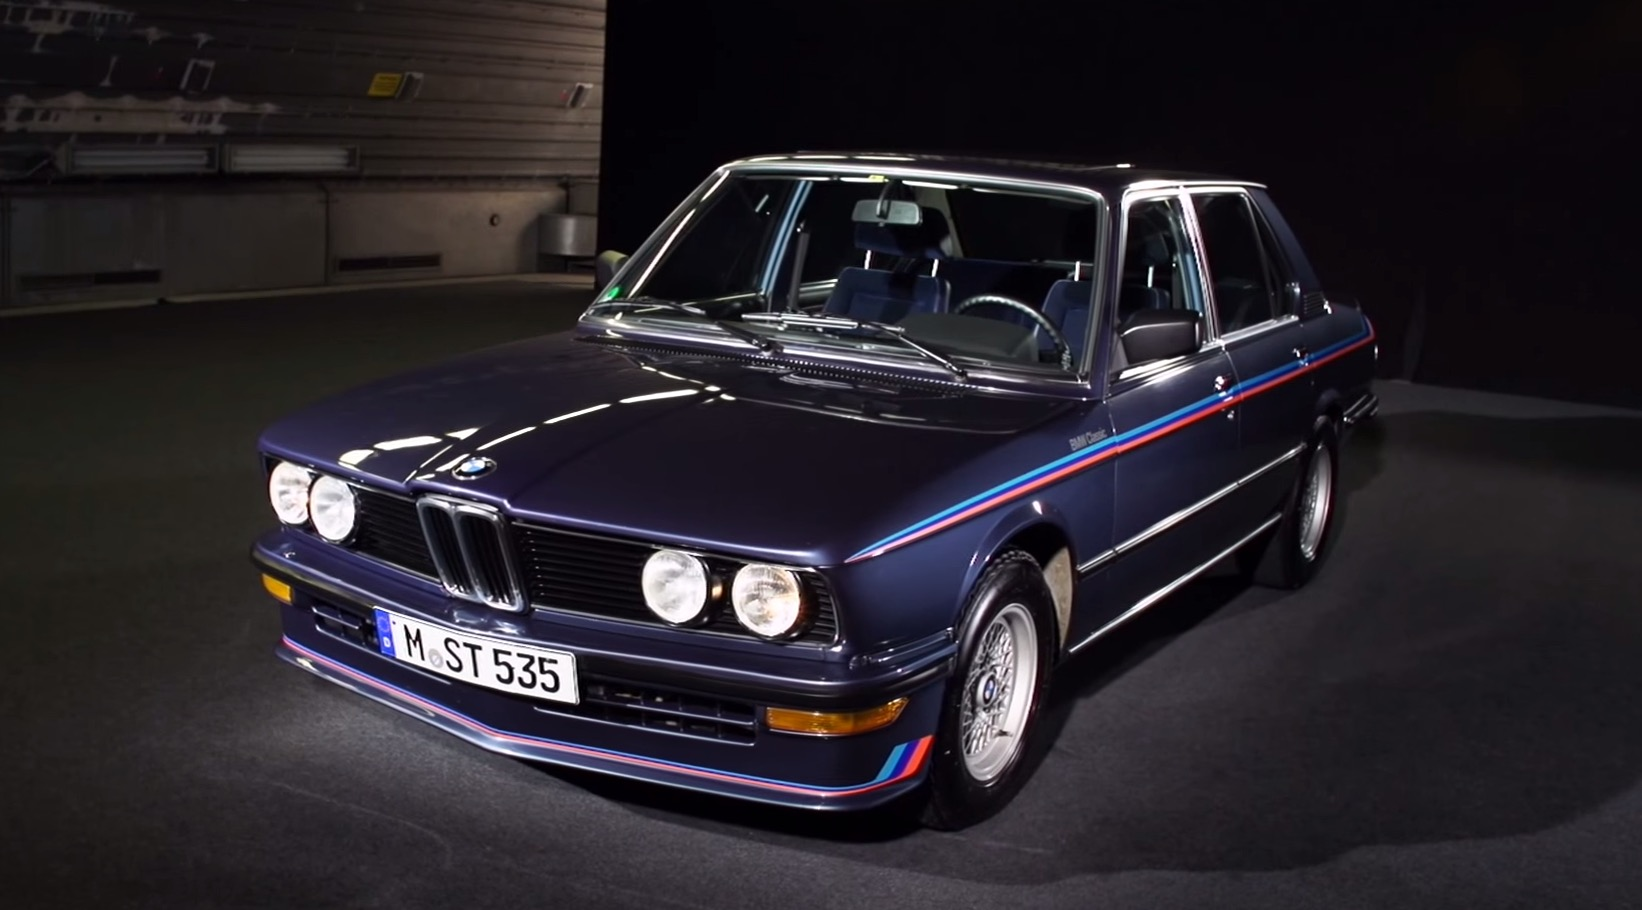 CarPorn: BMW E28 M535i – @GillyBerlin